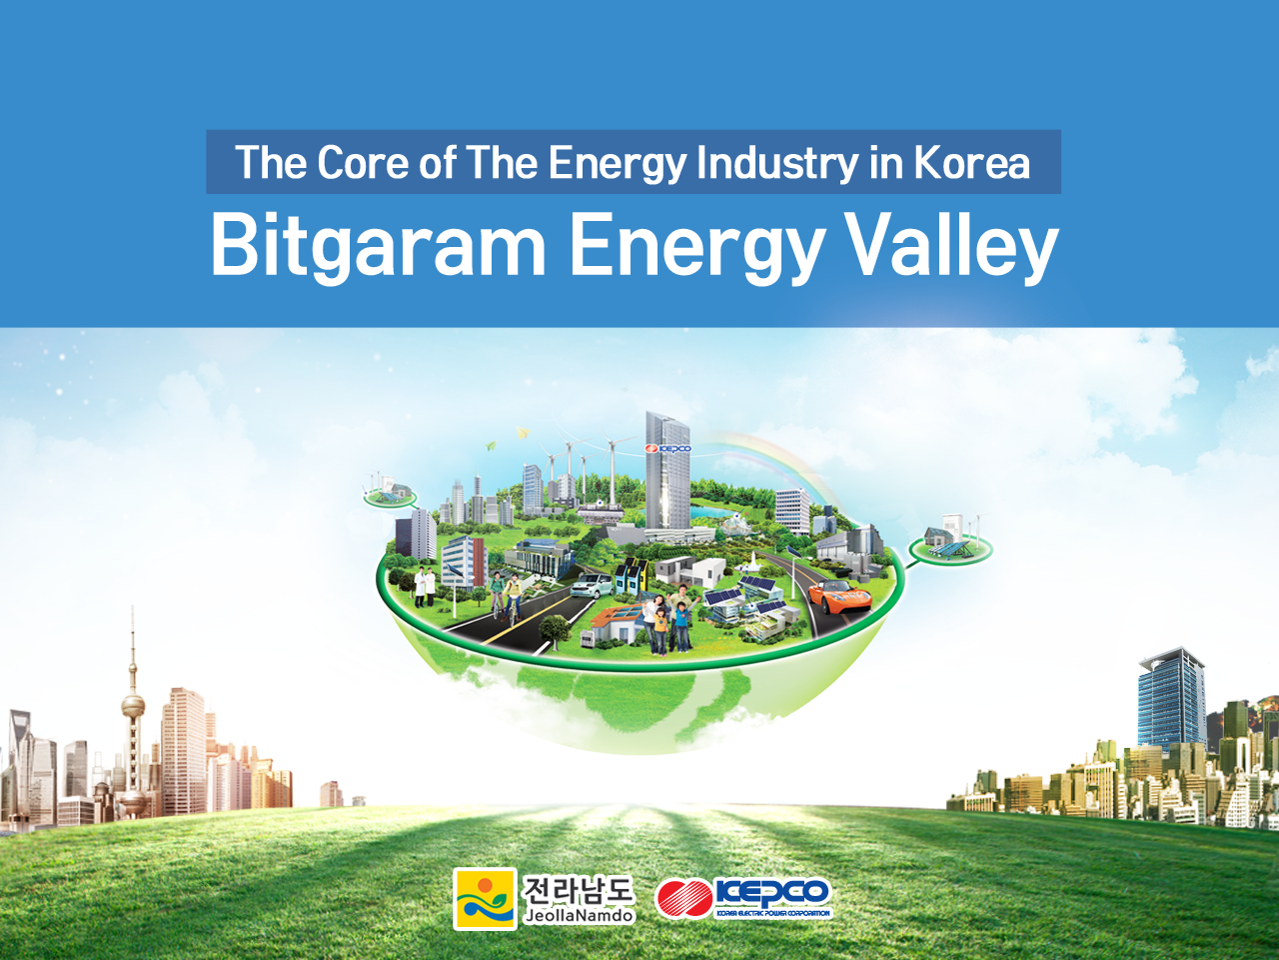 Bitgaram Energy Valley